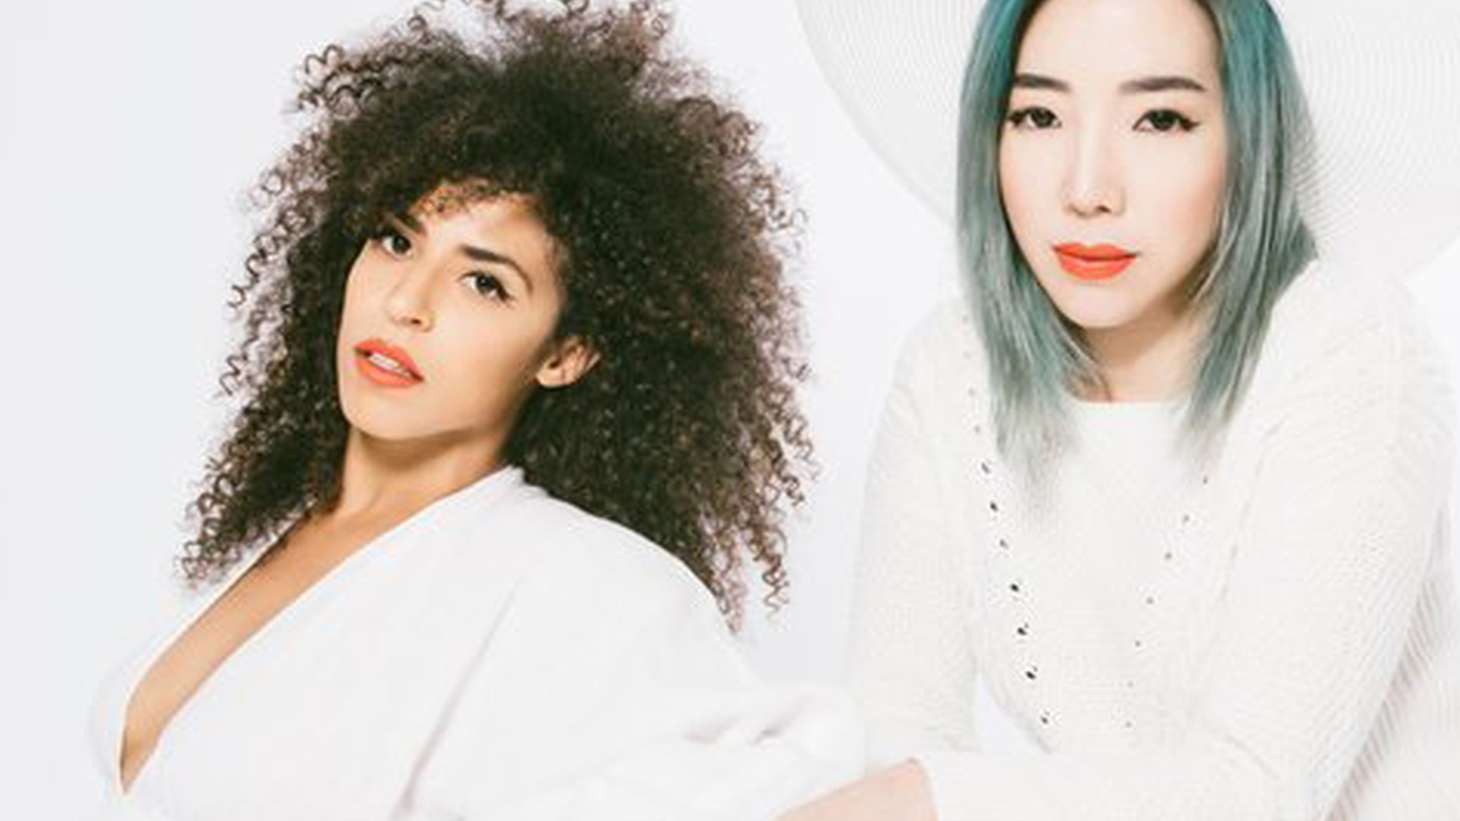 On their first official collaborative release, singer/songwriter Gavin Turek teams up with local DJ/producer TOKiMONSTA, giving each lady a chance to explore some different flavors. Greater than the sum of its parts, You're Invited is truly an inviting combination.